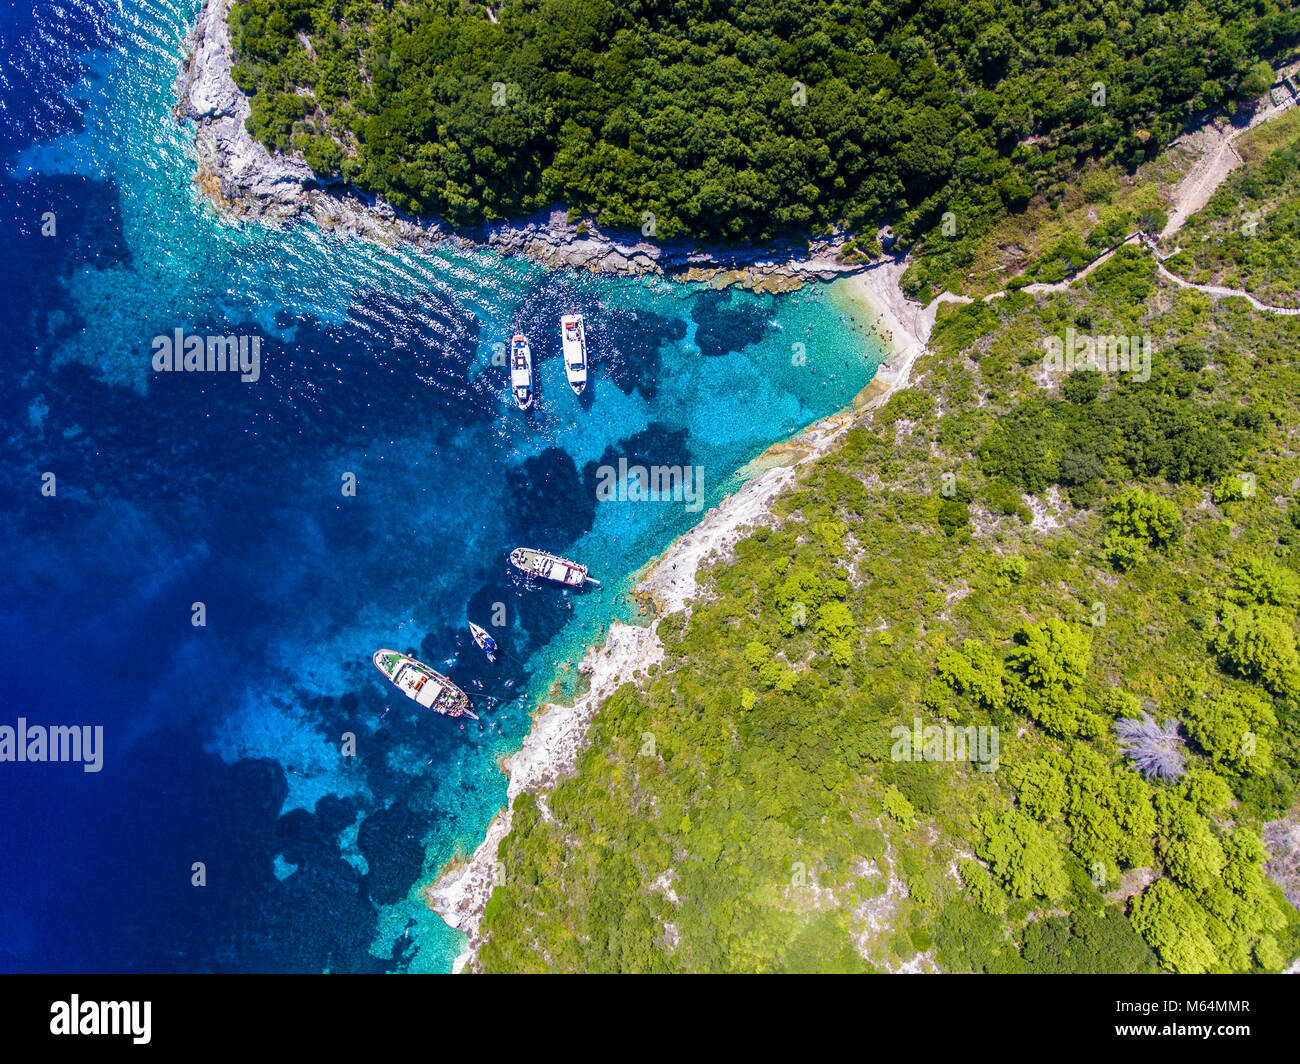 Antipaxos Island, Greece, with sandy beach, people swimming and yachts docked in the ethereal clear blue waters Stock Photo